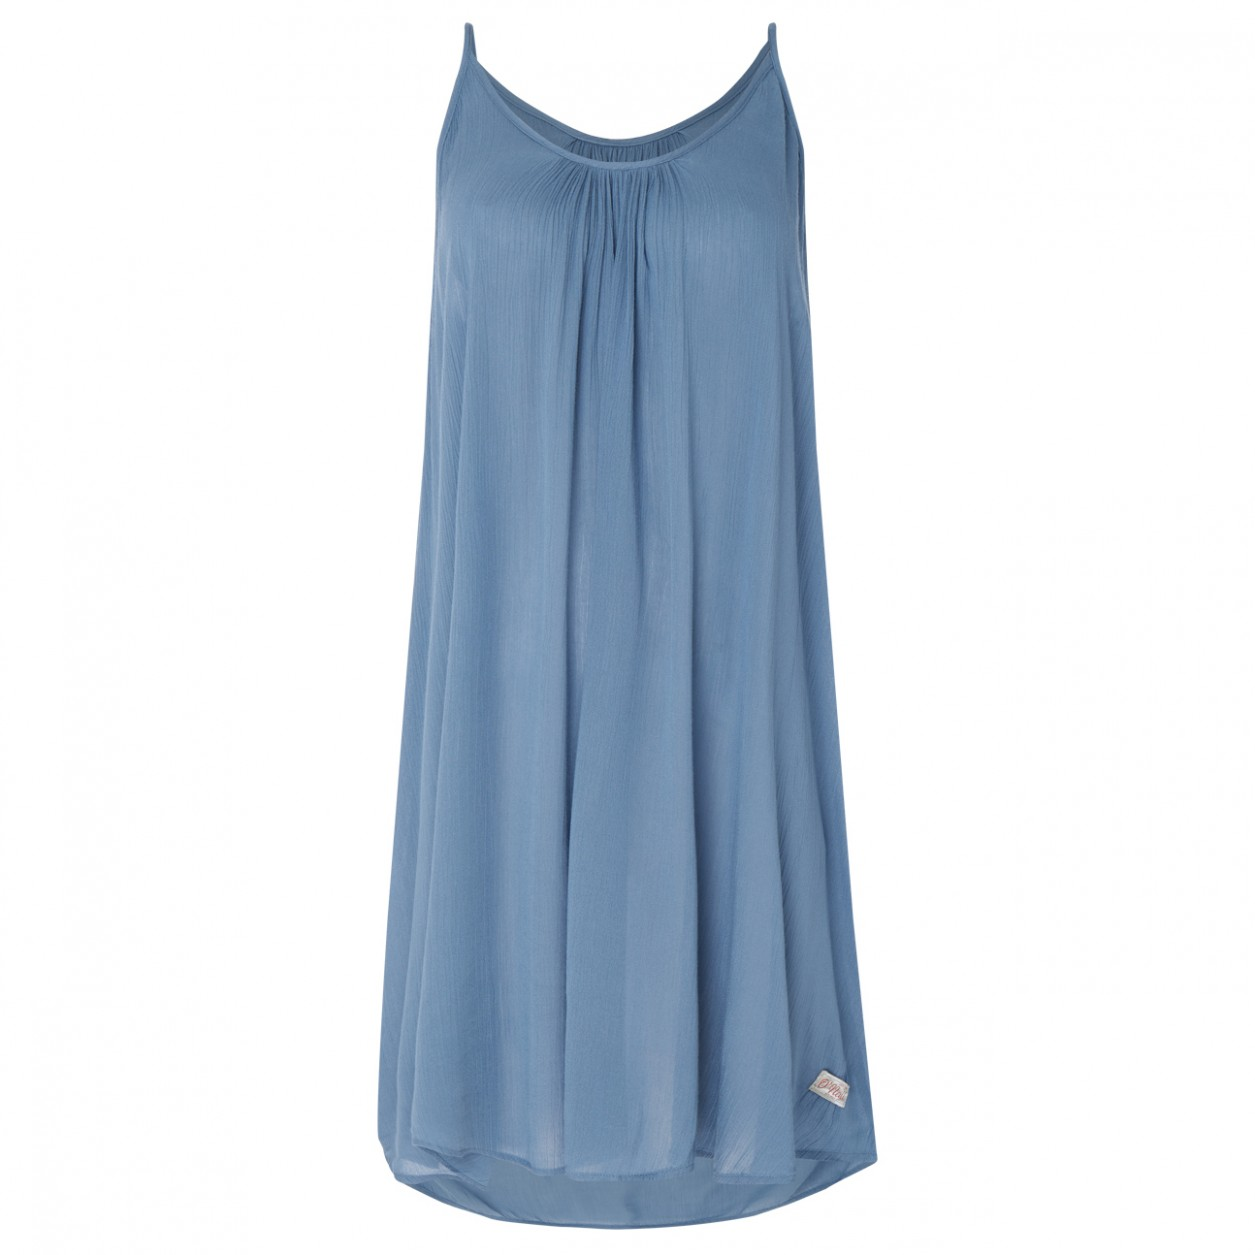 O'Neill - Women's Poppy Cover Up - Kleid - Walton Blue  L